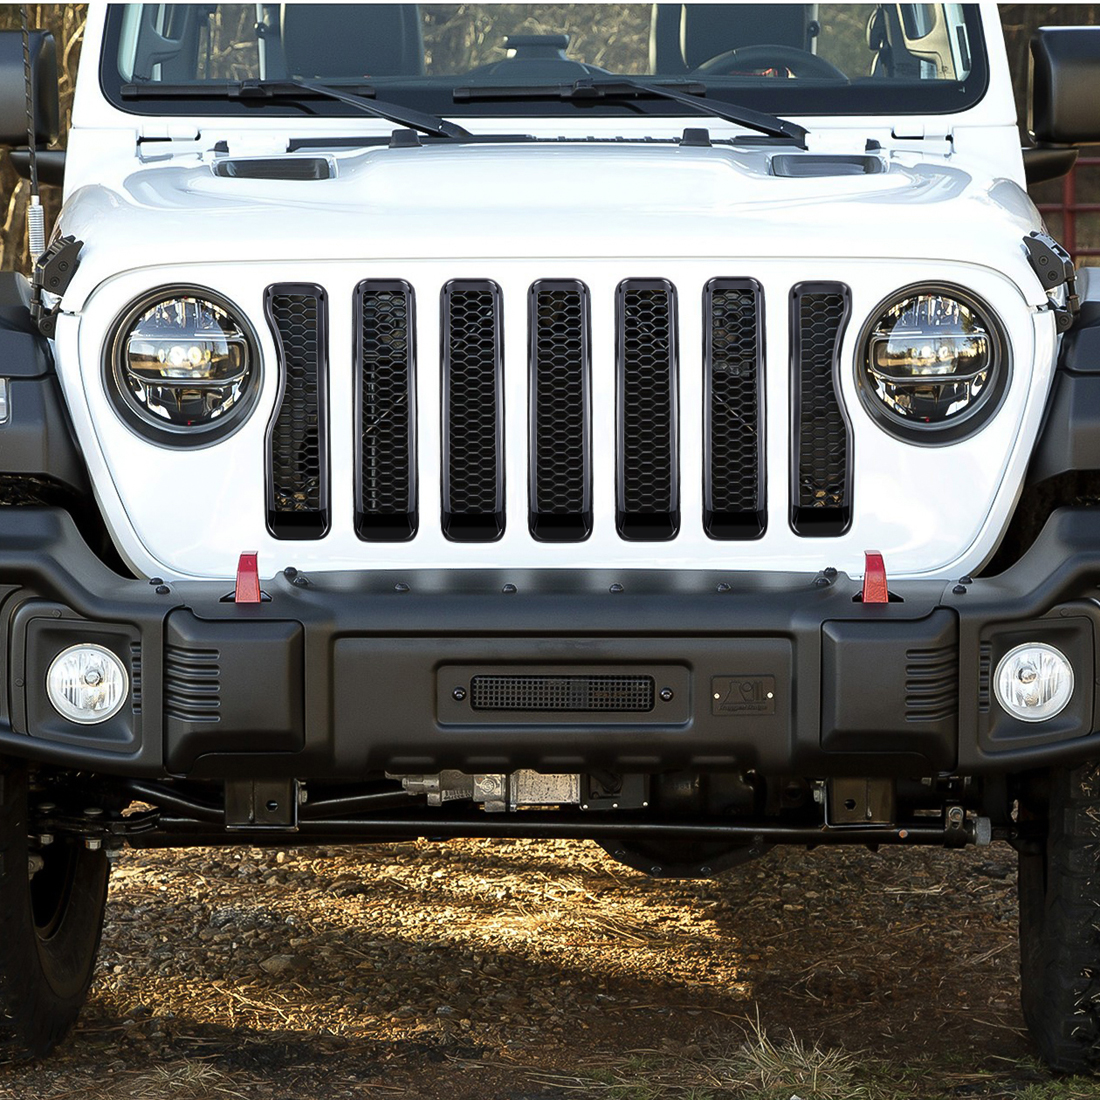 7x Front Grille Grill Insert Cover Mesh Trim For 2018 Jeep Wrangler JL Sport #ya